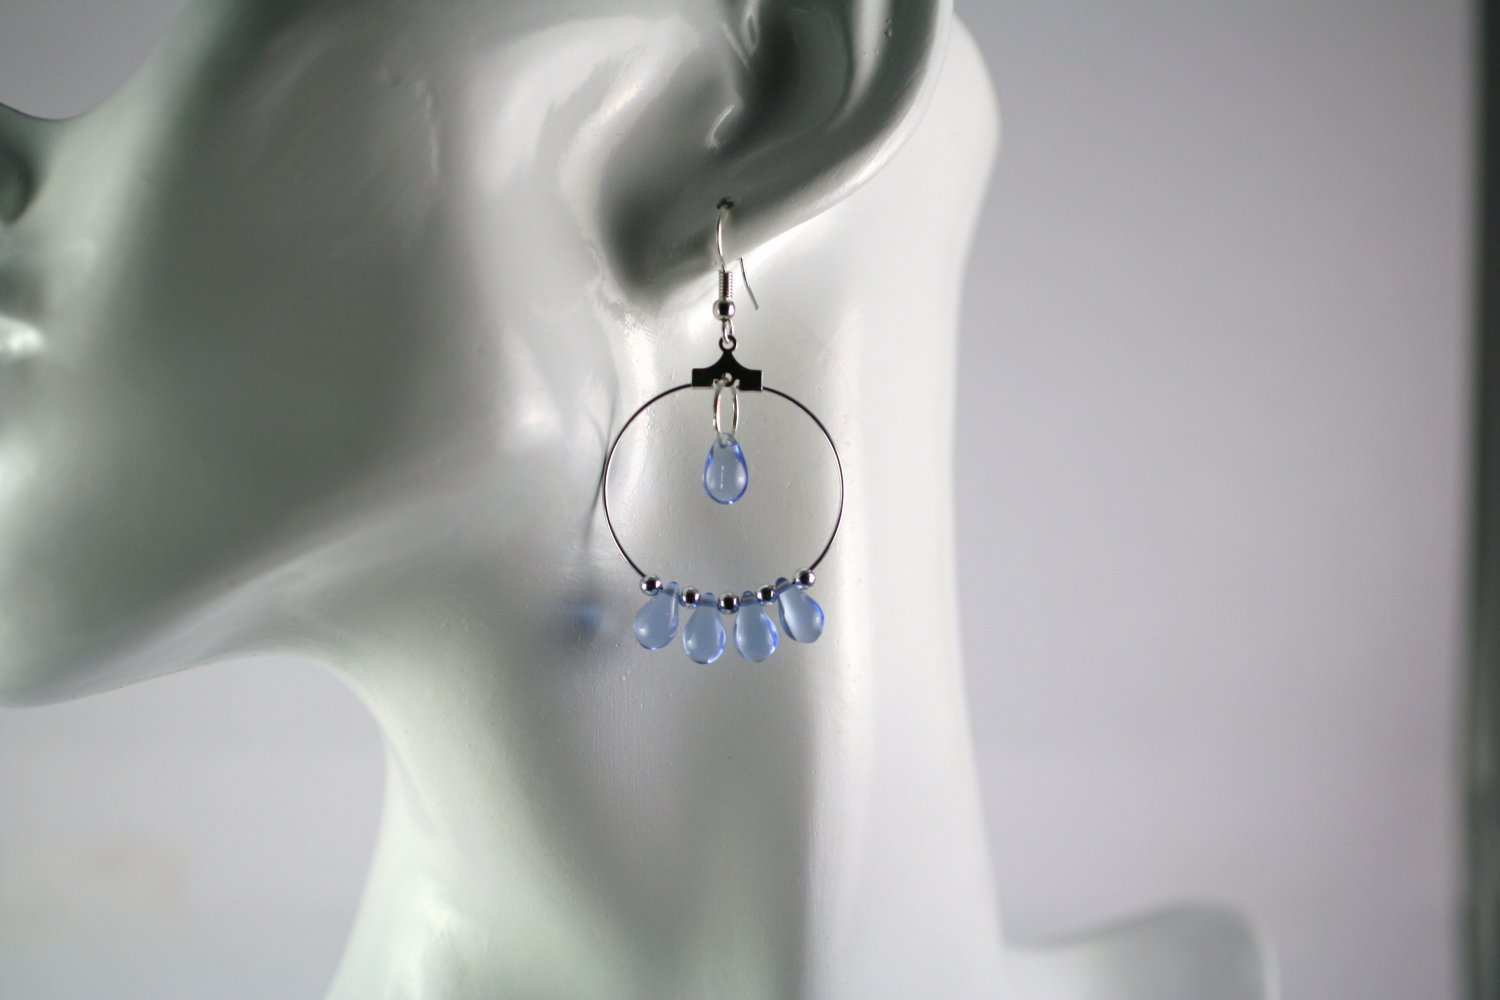 Silver Hoop Earrings with Light BlueTear Drop Beads 1 in.  Handcrafted Jewelry